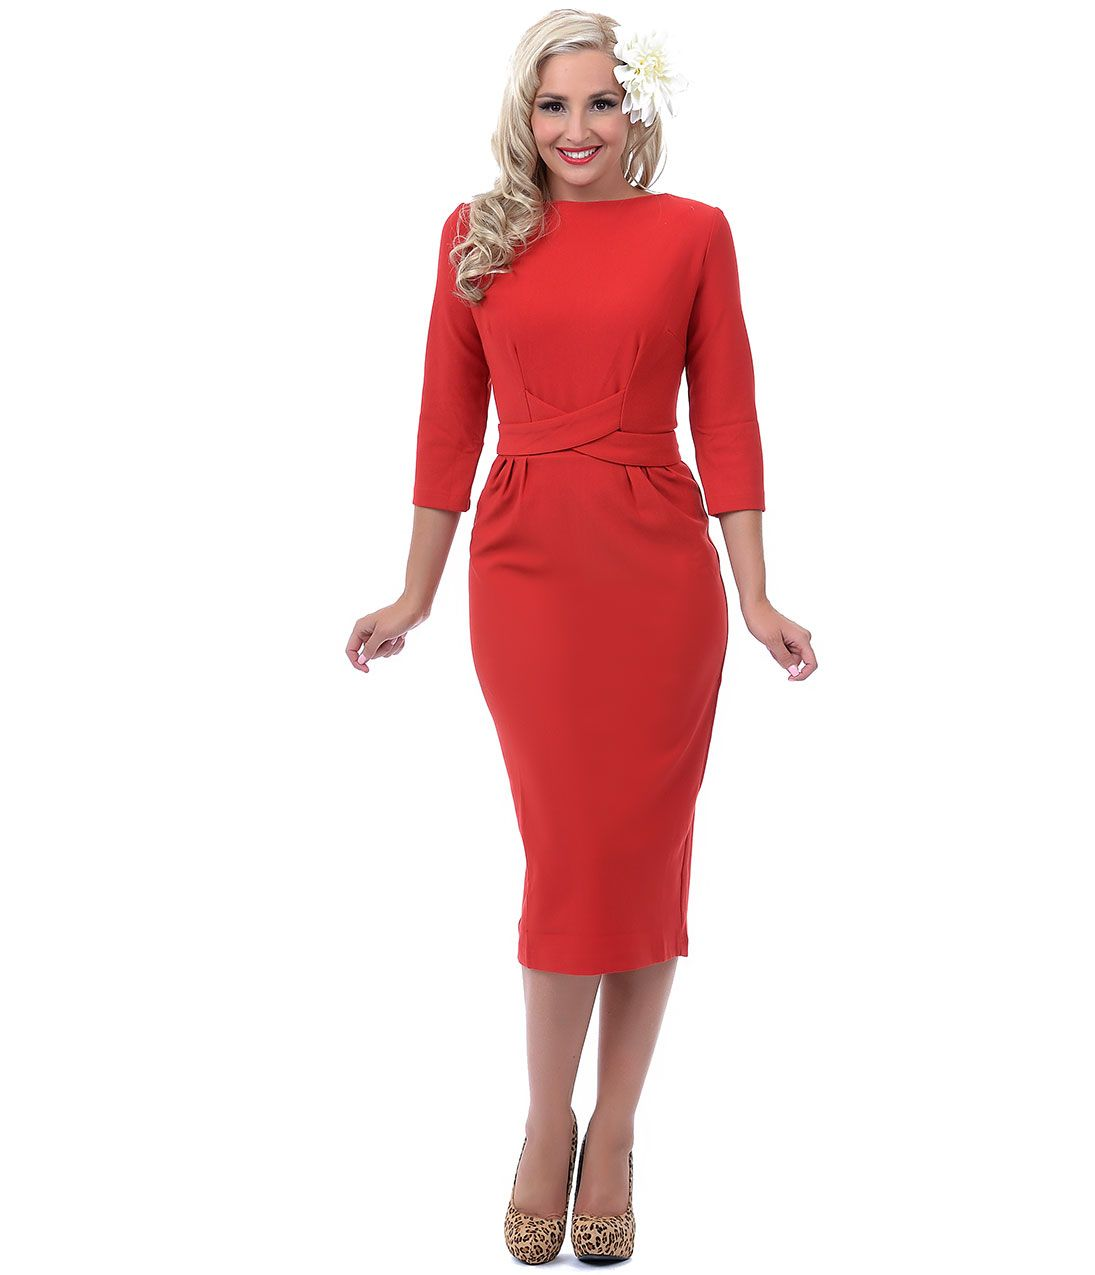 Red Three-Quarter Sleeve Vickie Wiggle Dress #uniquevintage | This ...